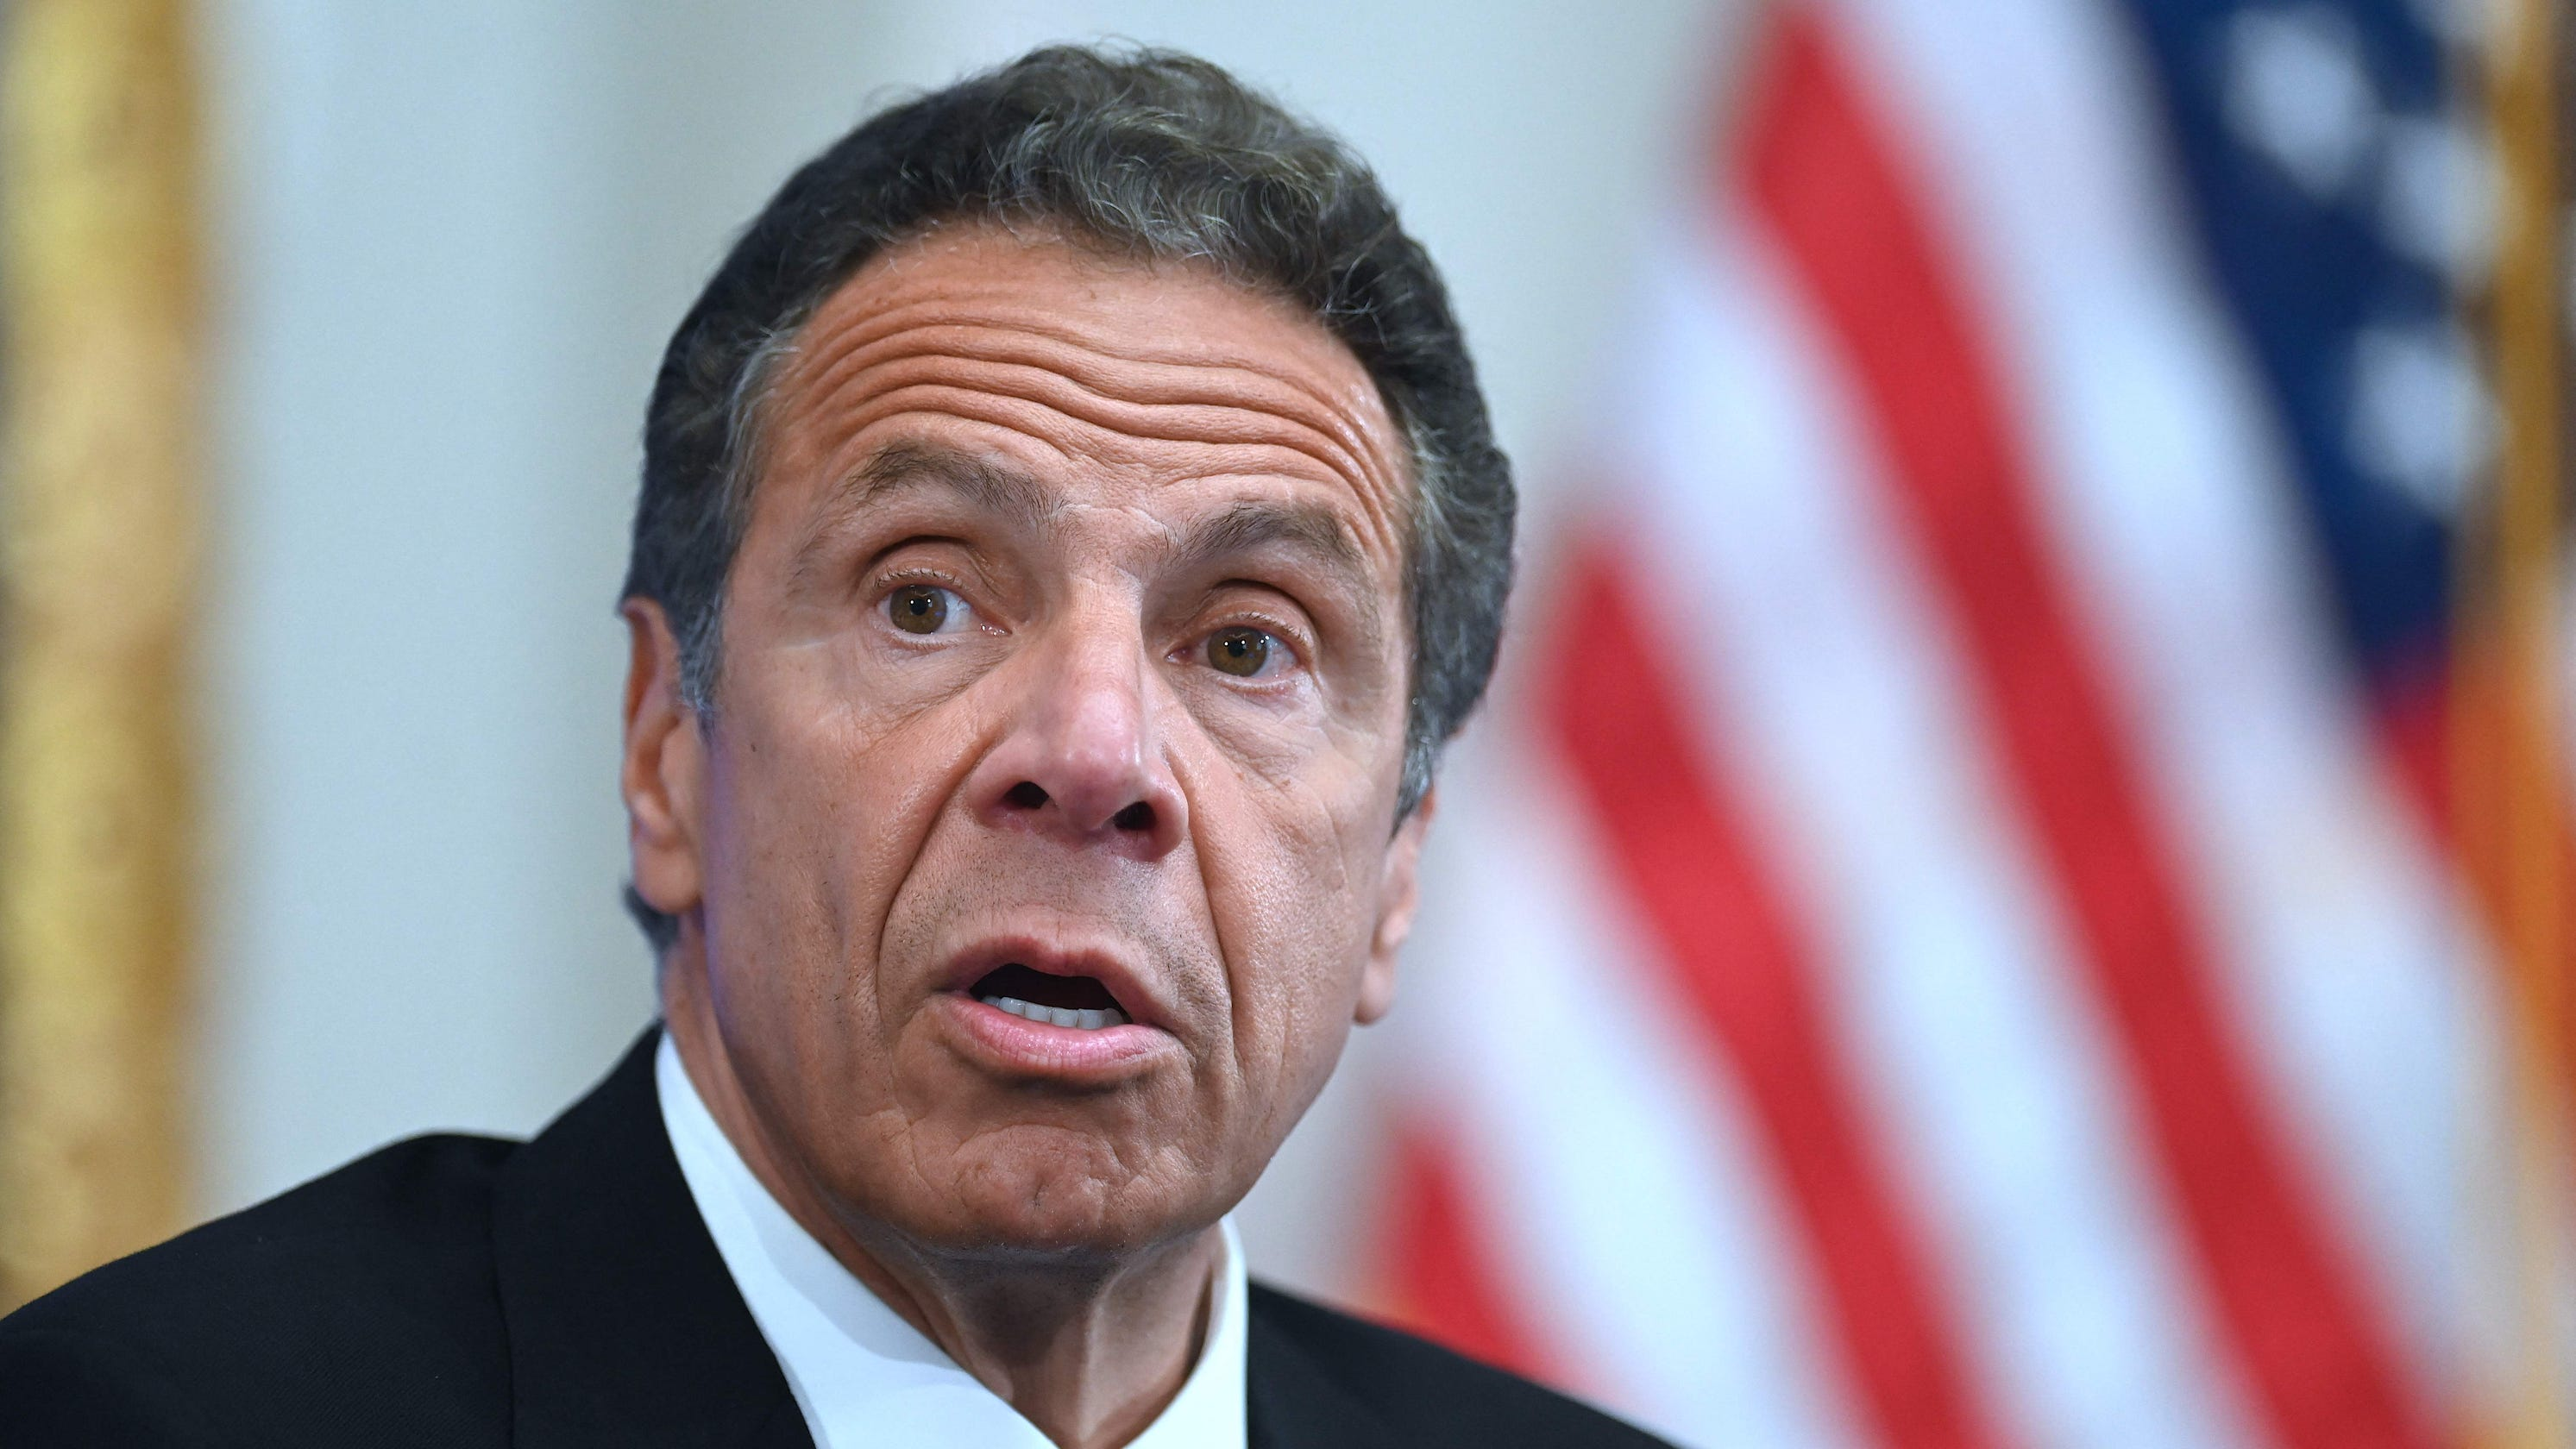 For Andrew Cuomo, there can be no sexual harassment double standard. He should resign.